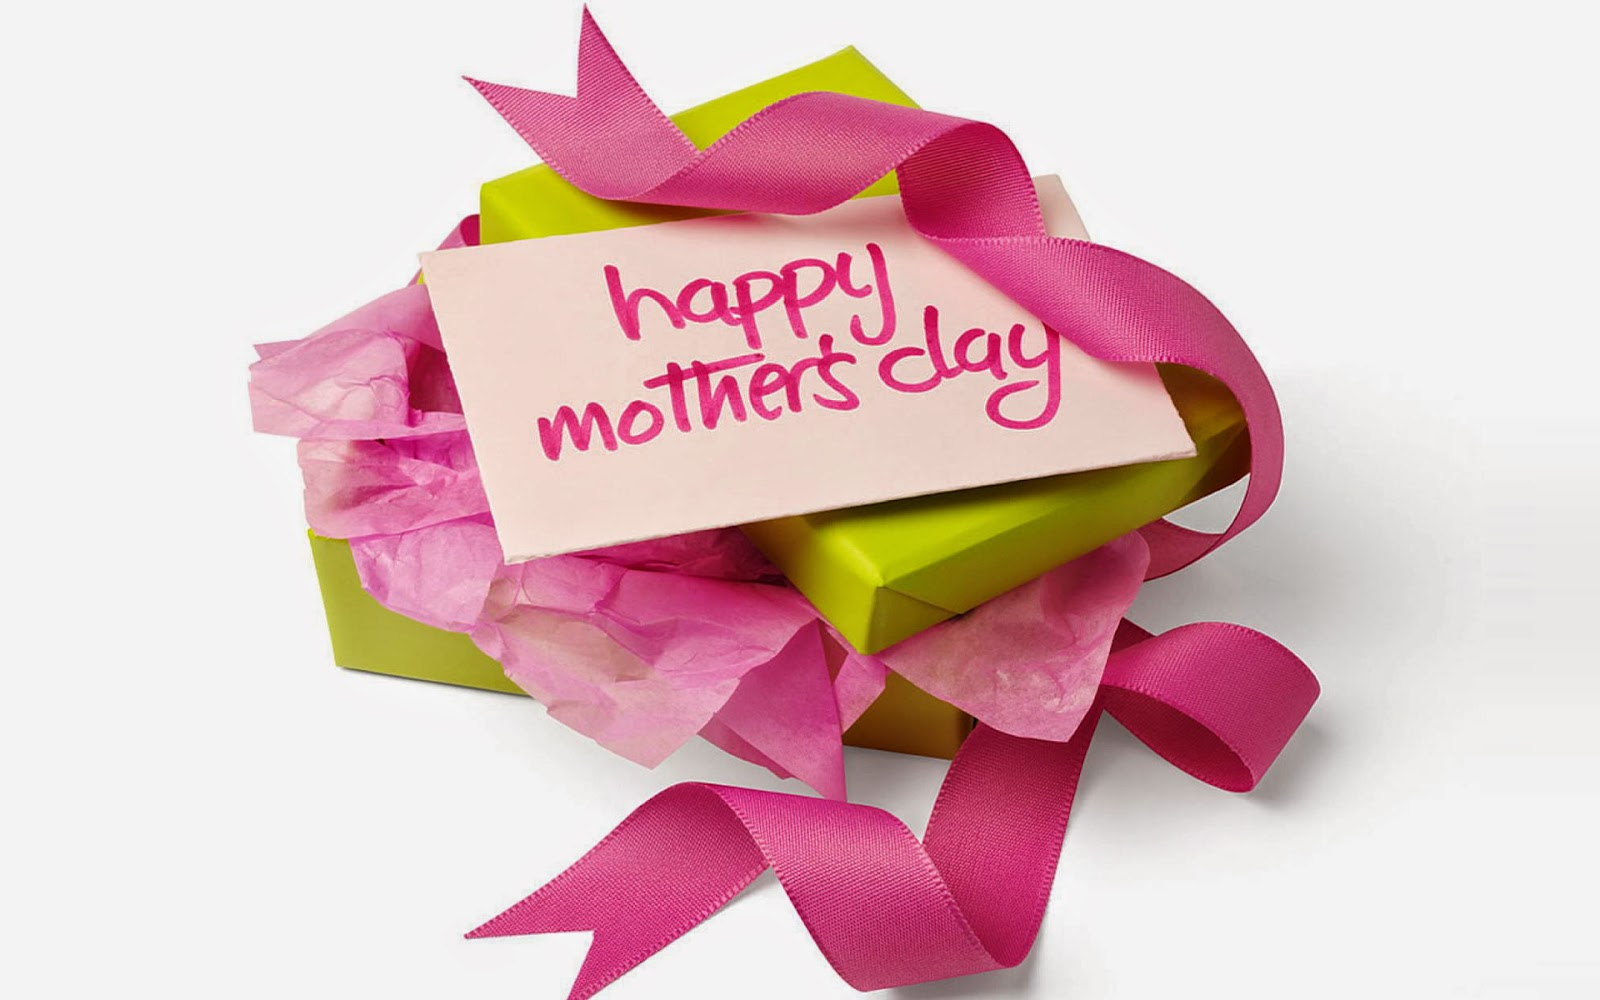 Mothers-day-gift-wallpaper